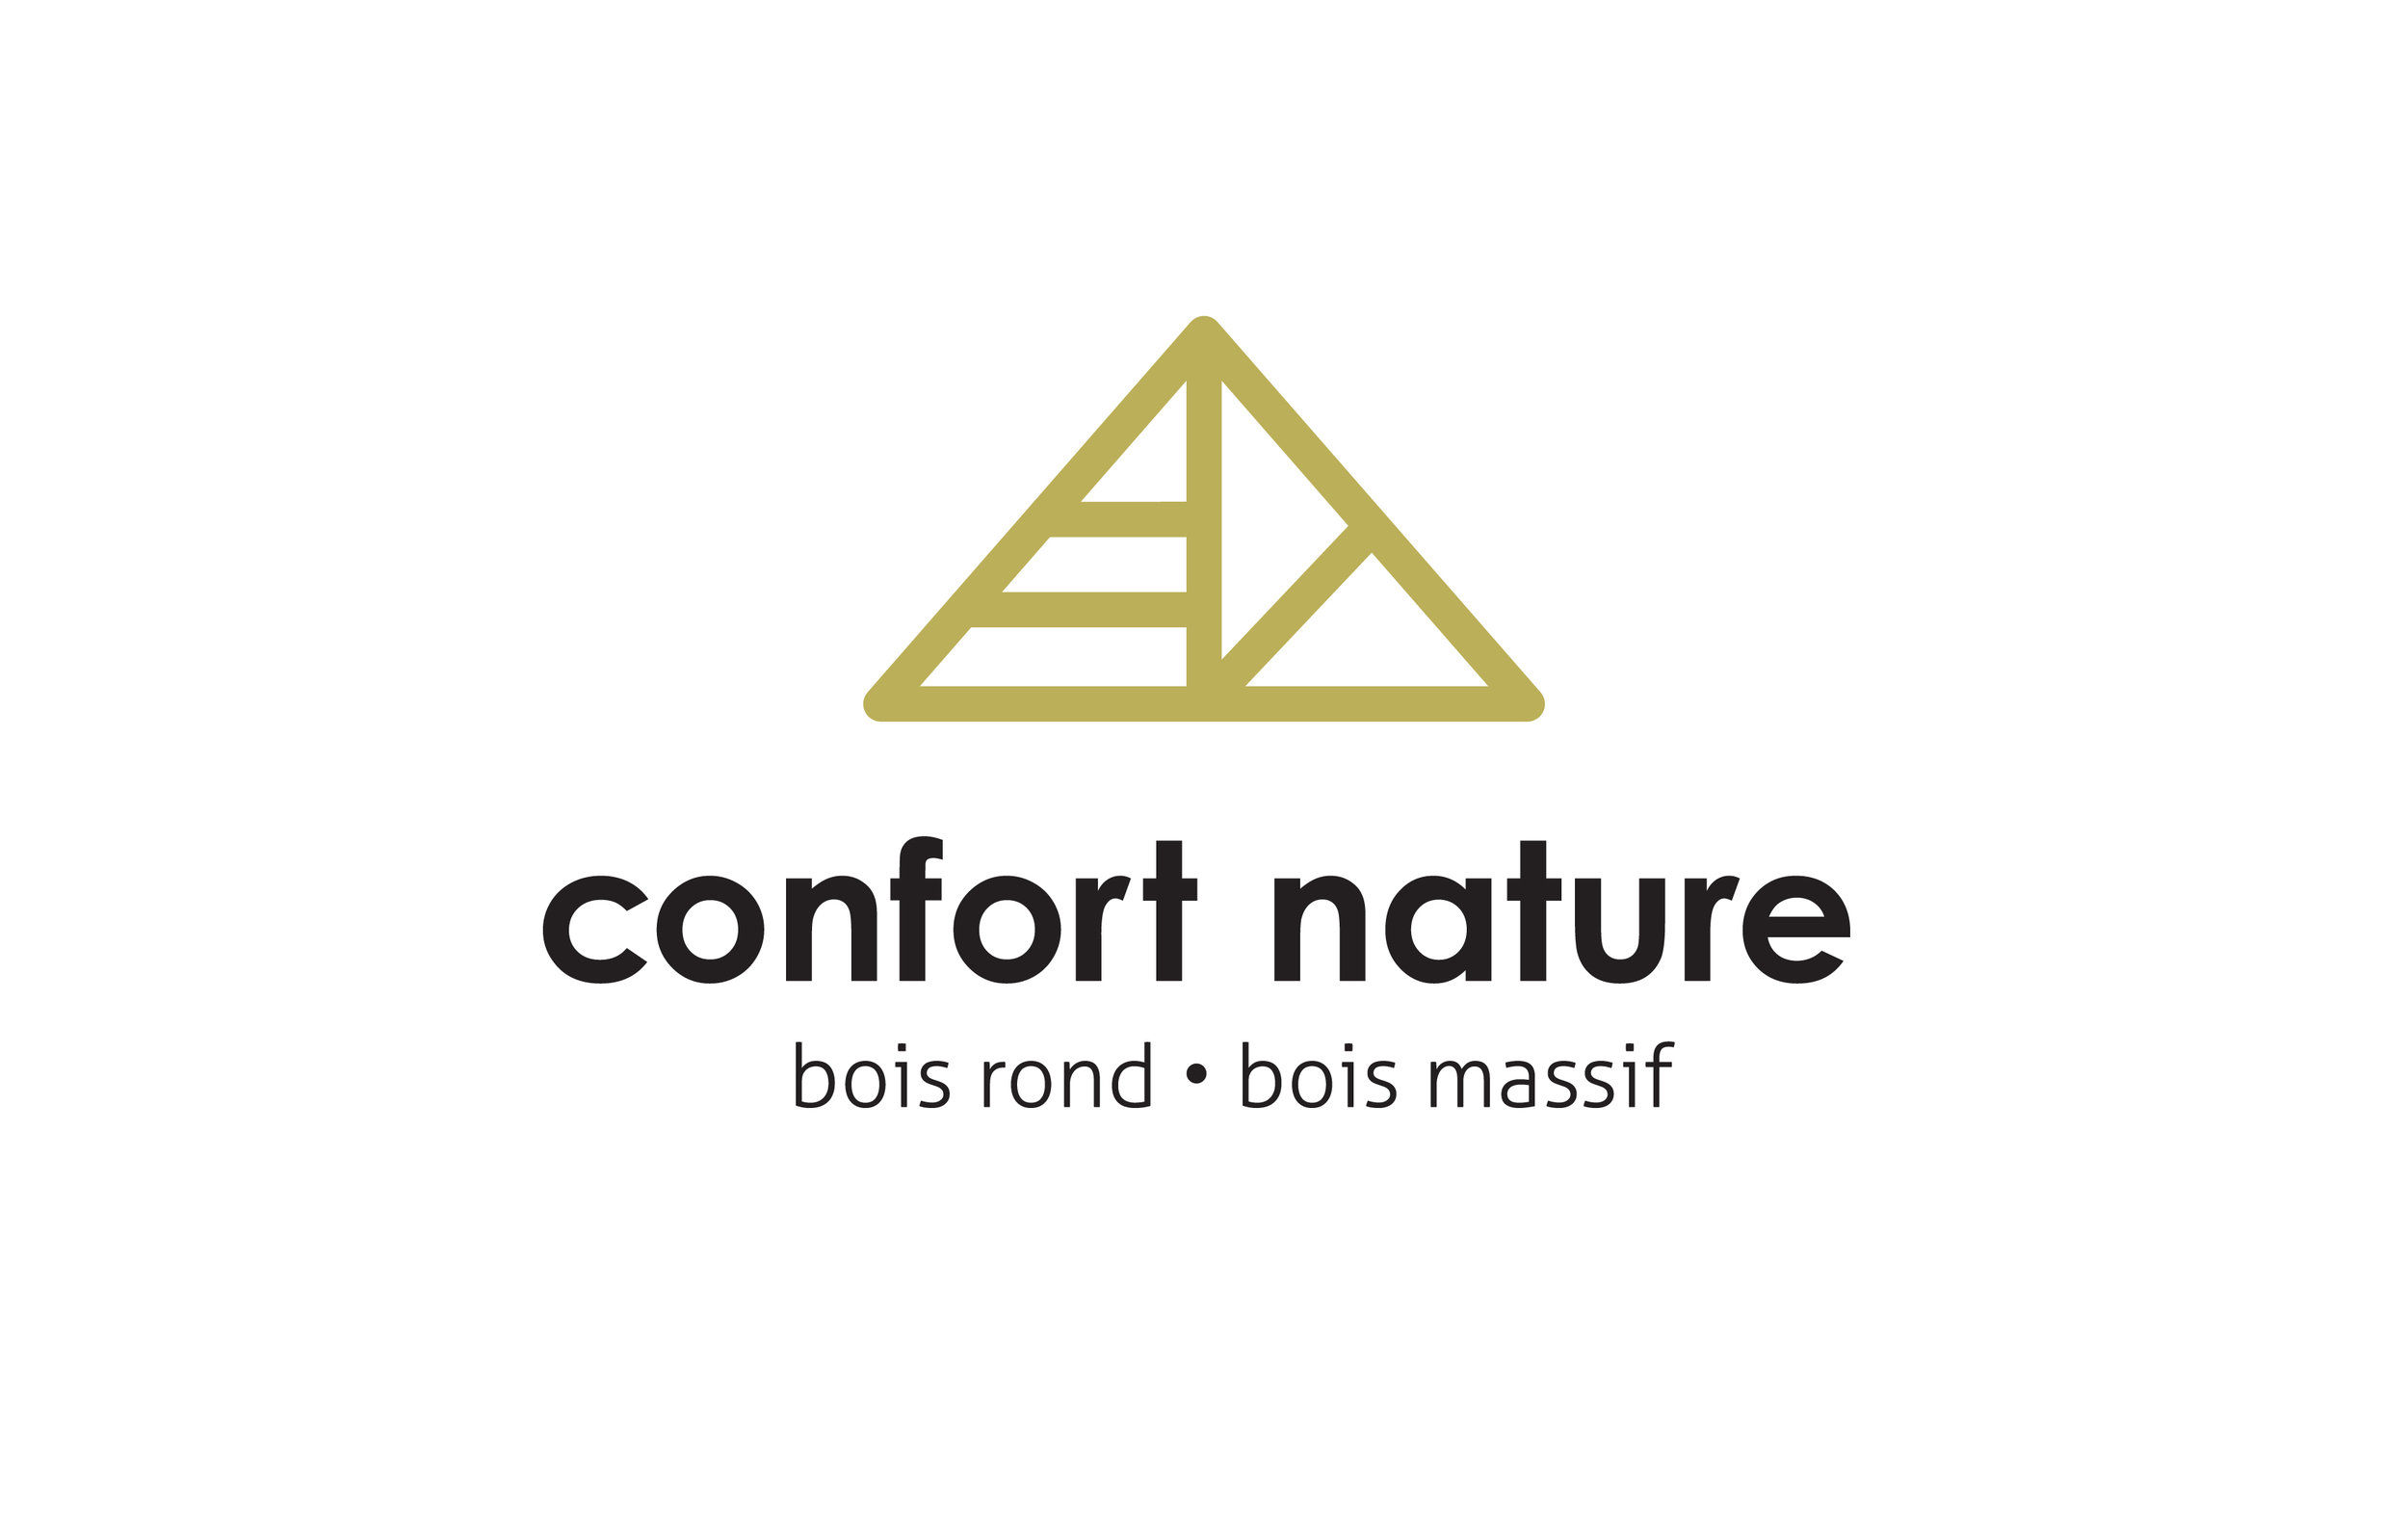 confort-nature_web_opt - copie.PNG